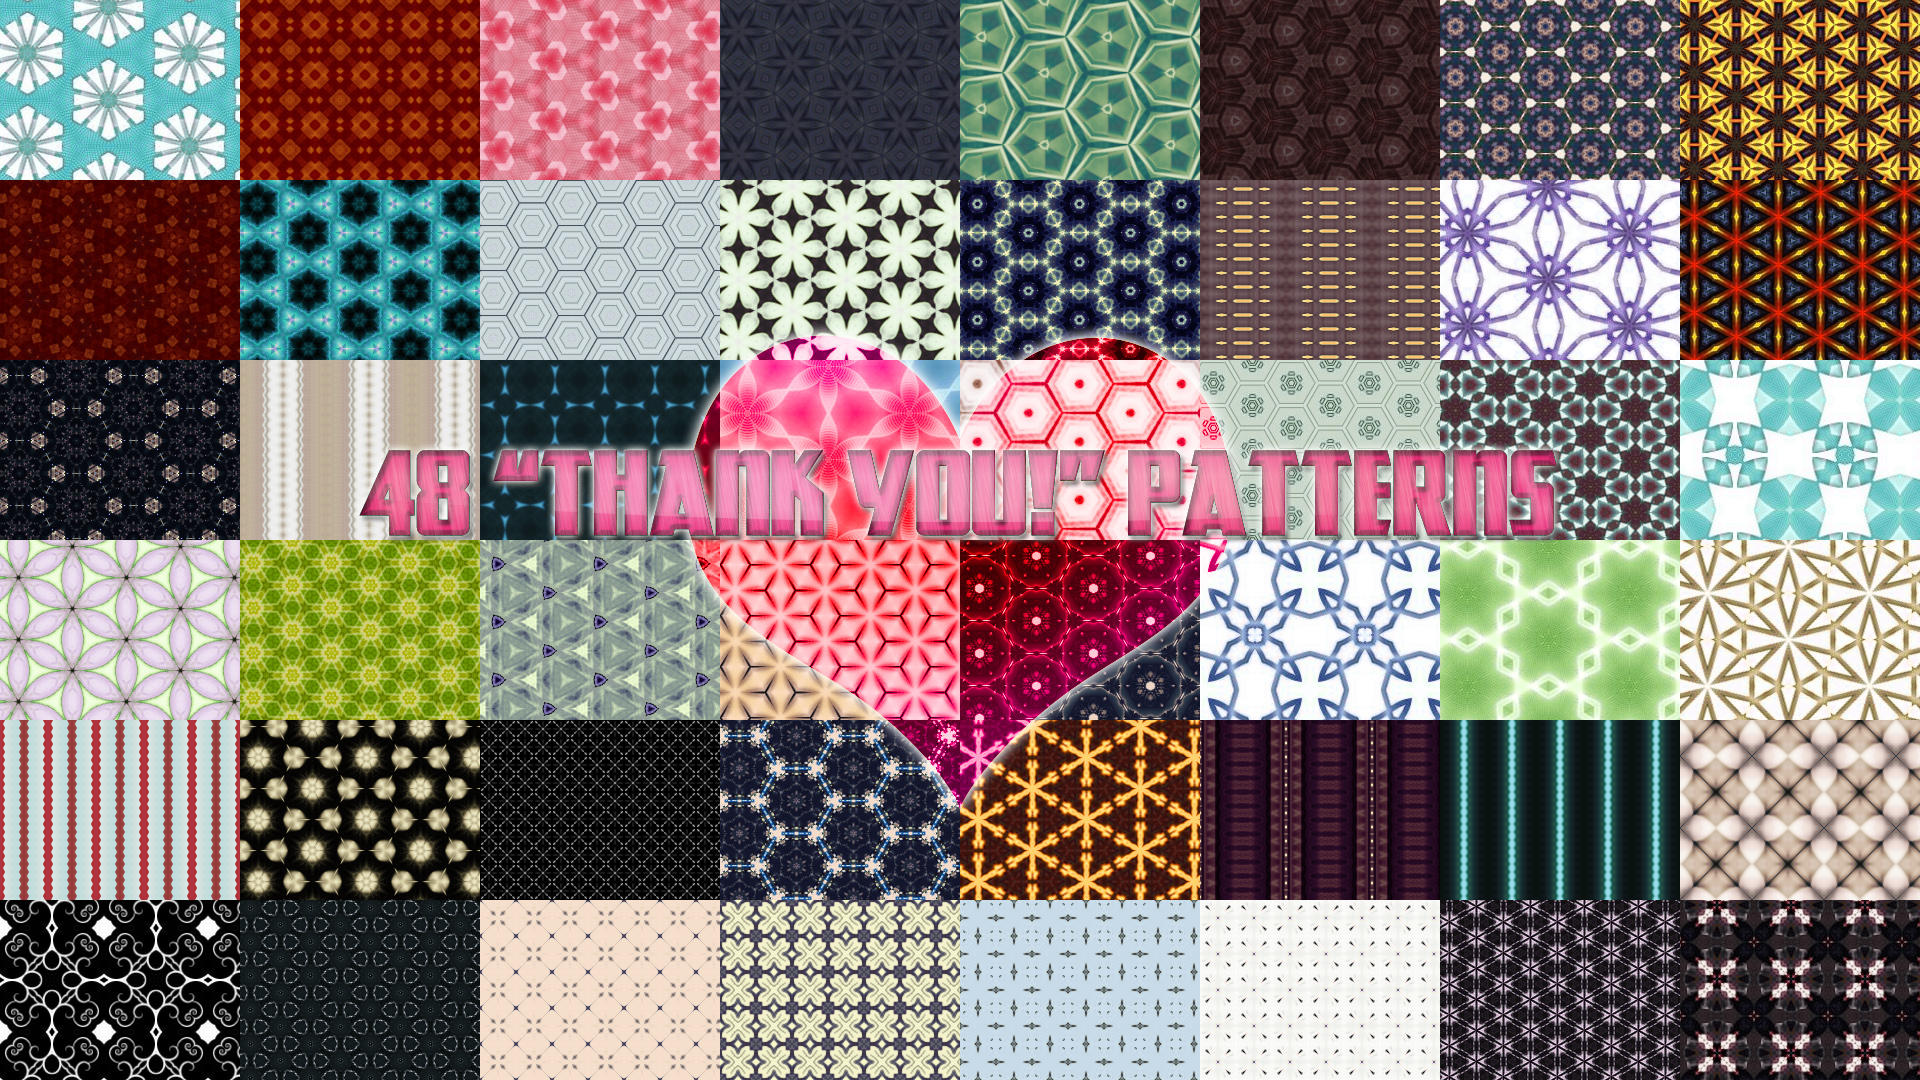 22 Free Photoshop Patterns By Gamekiller48 Deviantart – Dibujos Para